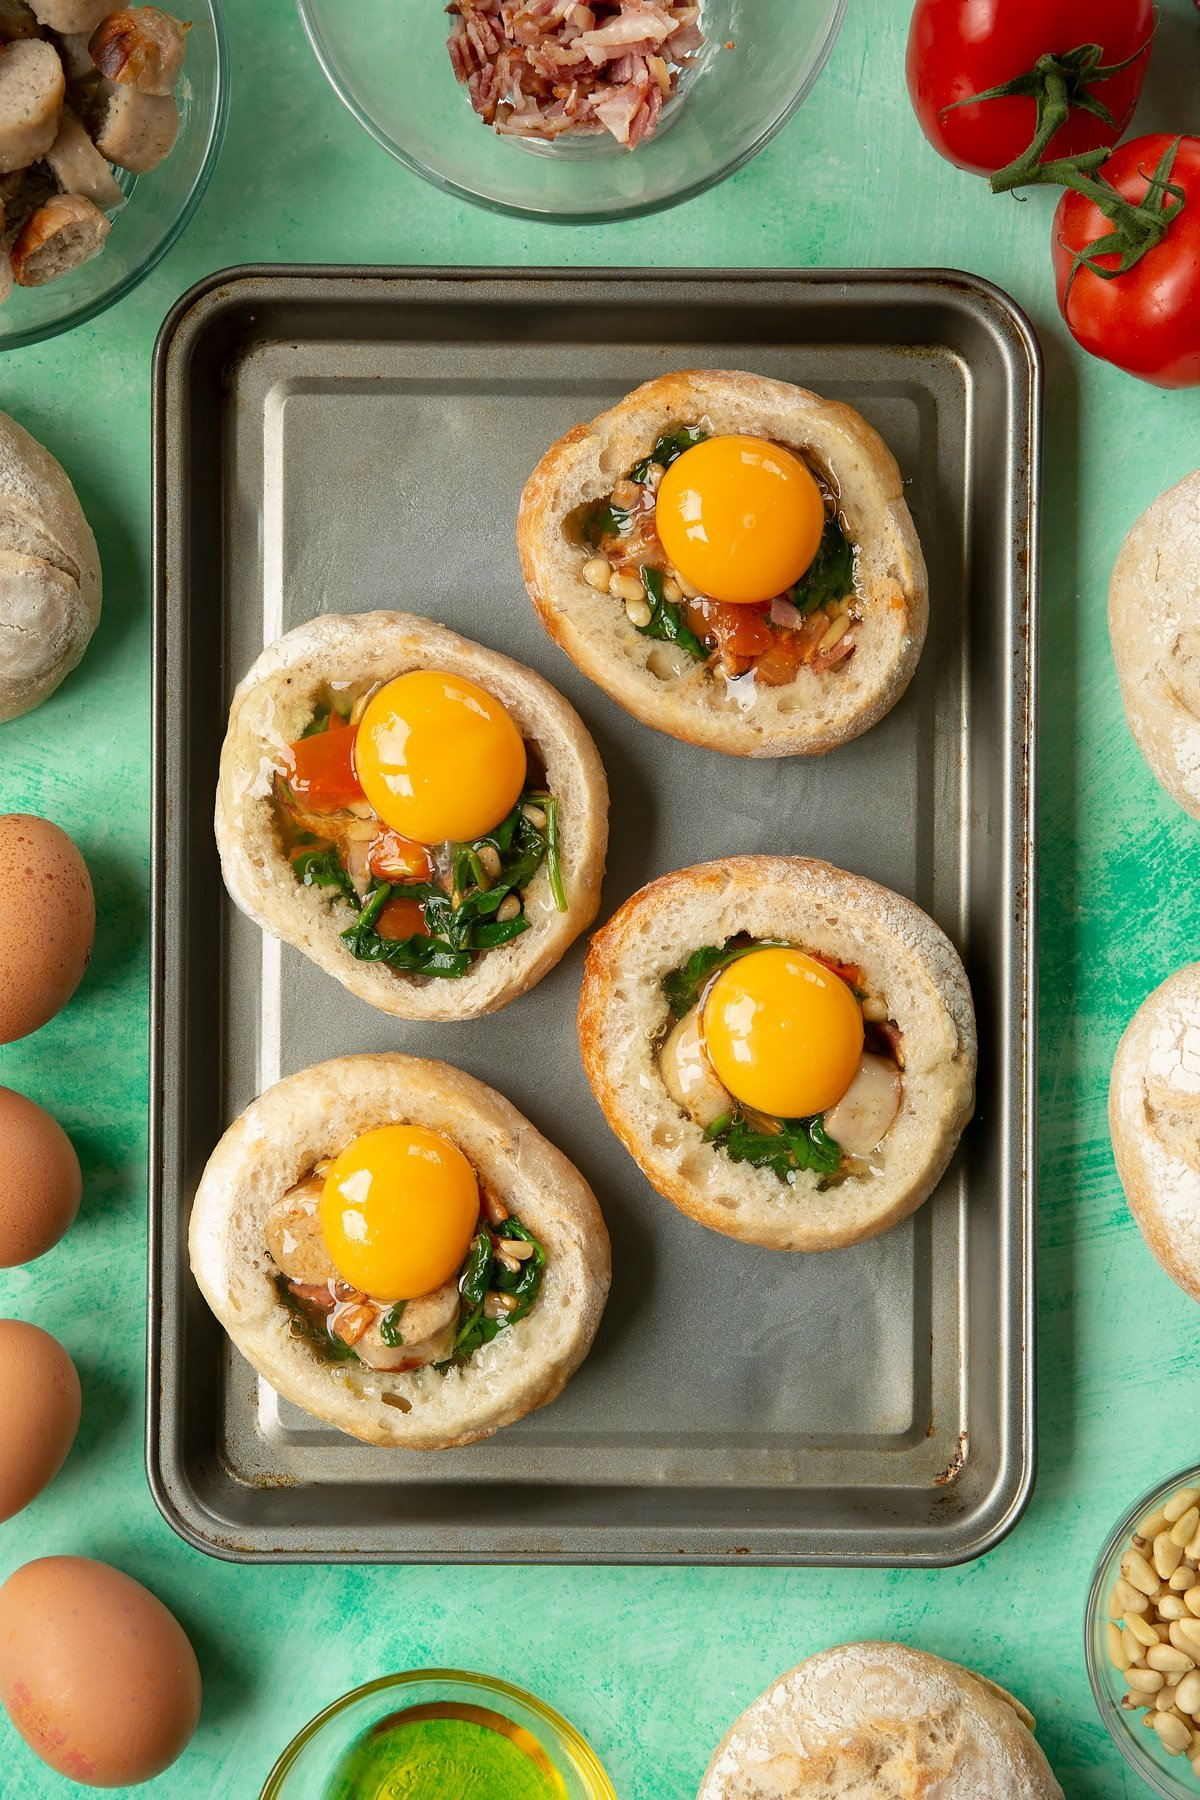 Four bread rolls on a baking tray. The rolls are hollowed out and filled with a mix of fried sausage, bacon, chopped tomatoes, pine nuts and wilted spinach, and topped with eggs. The tray is surrounded by ingredients to make breakfast rolls.